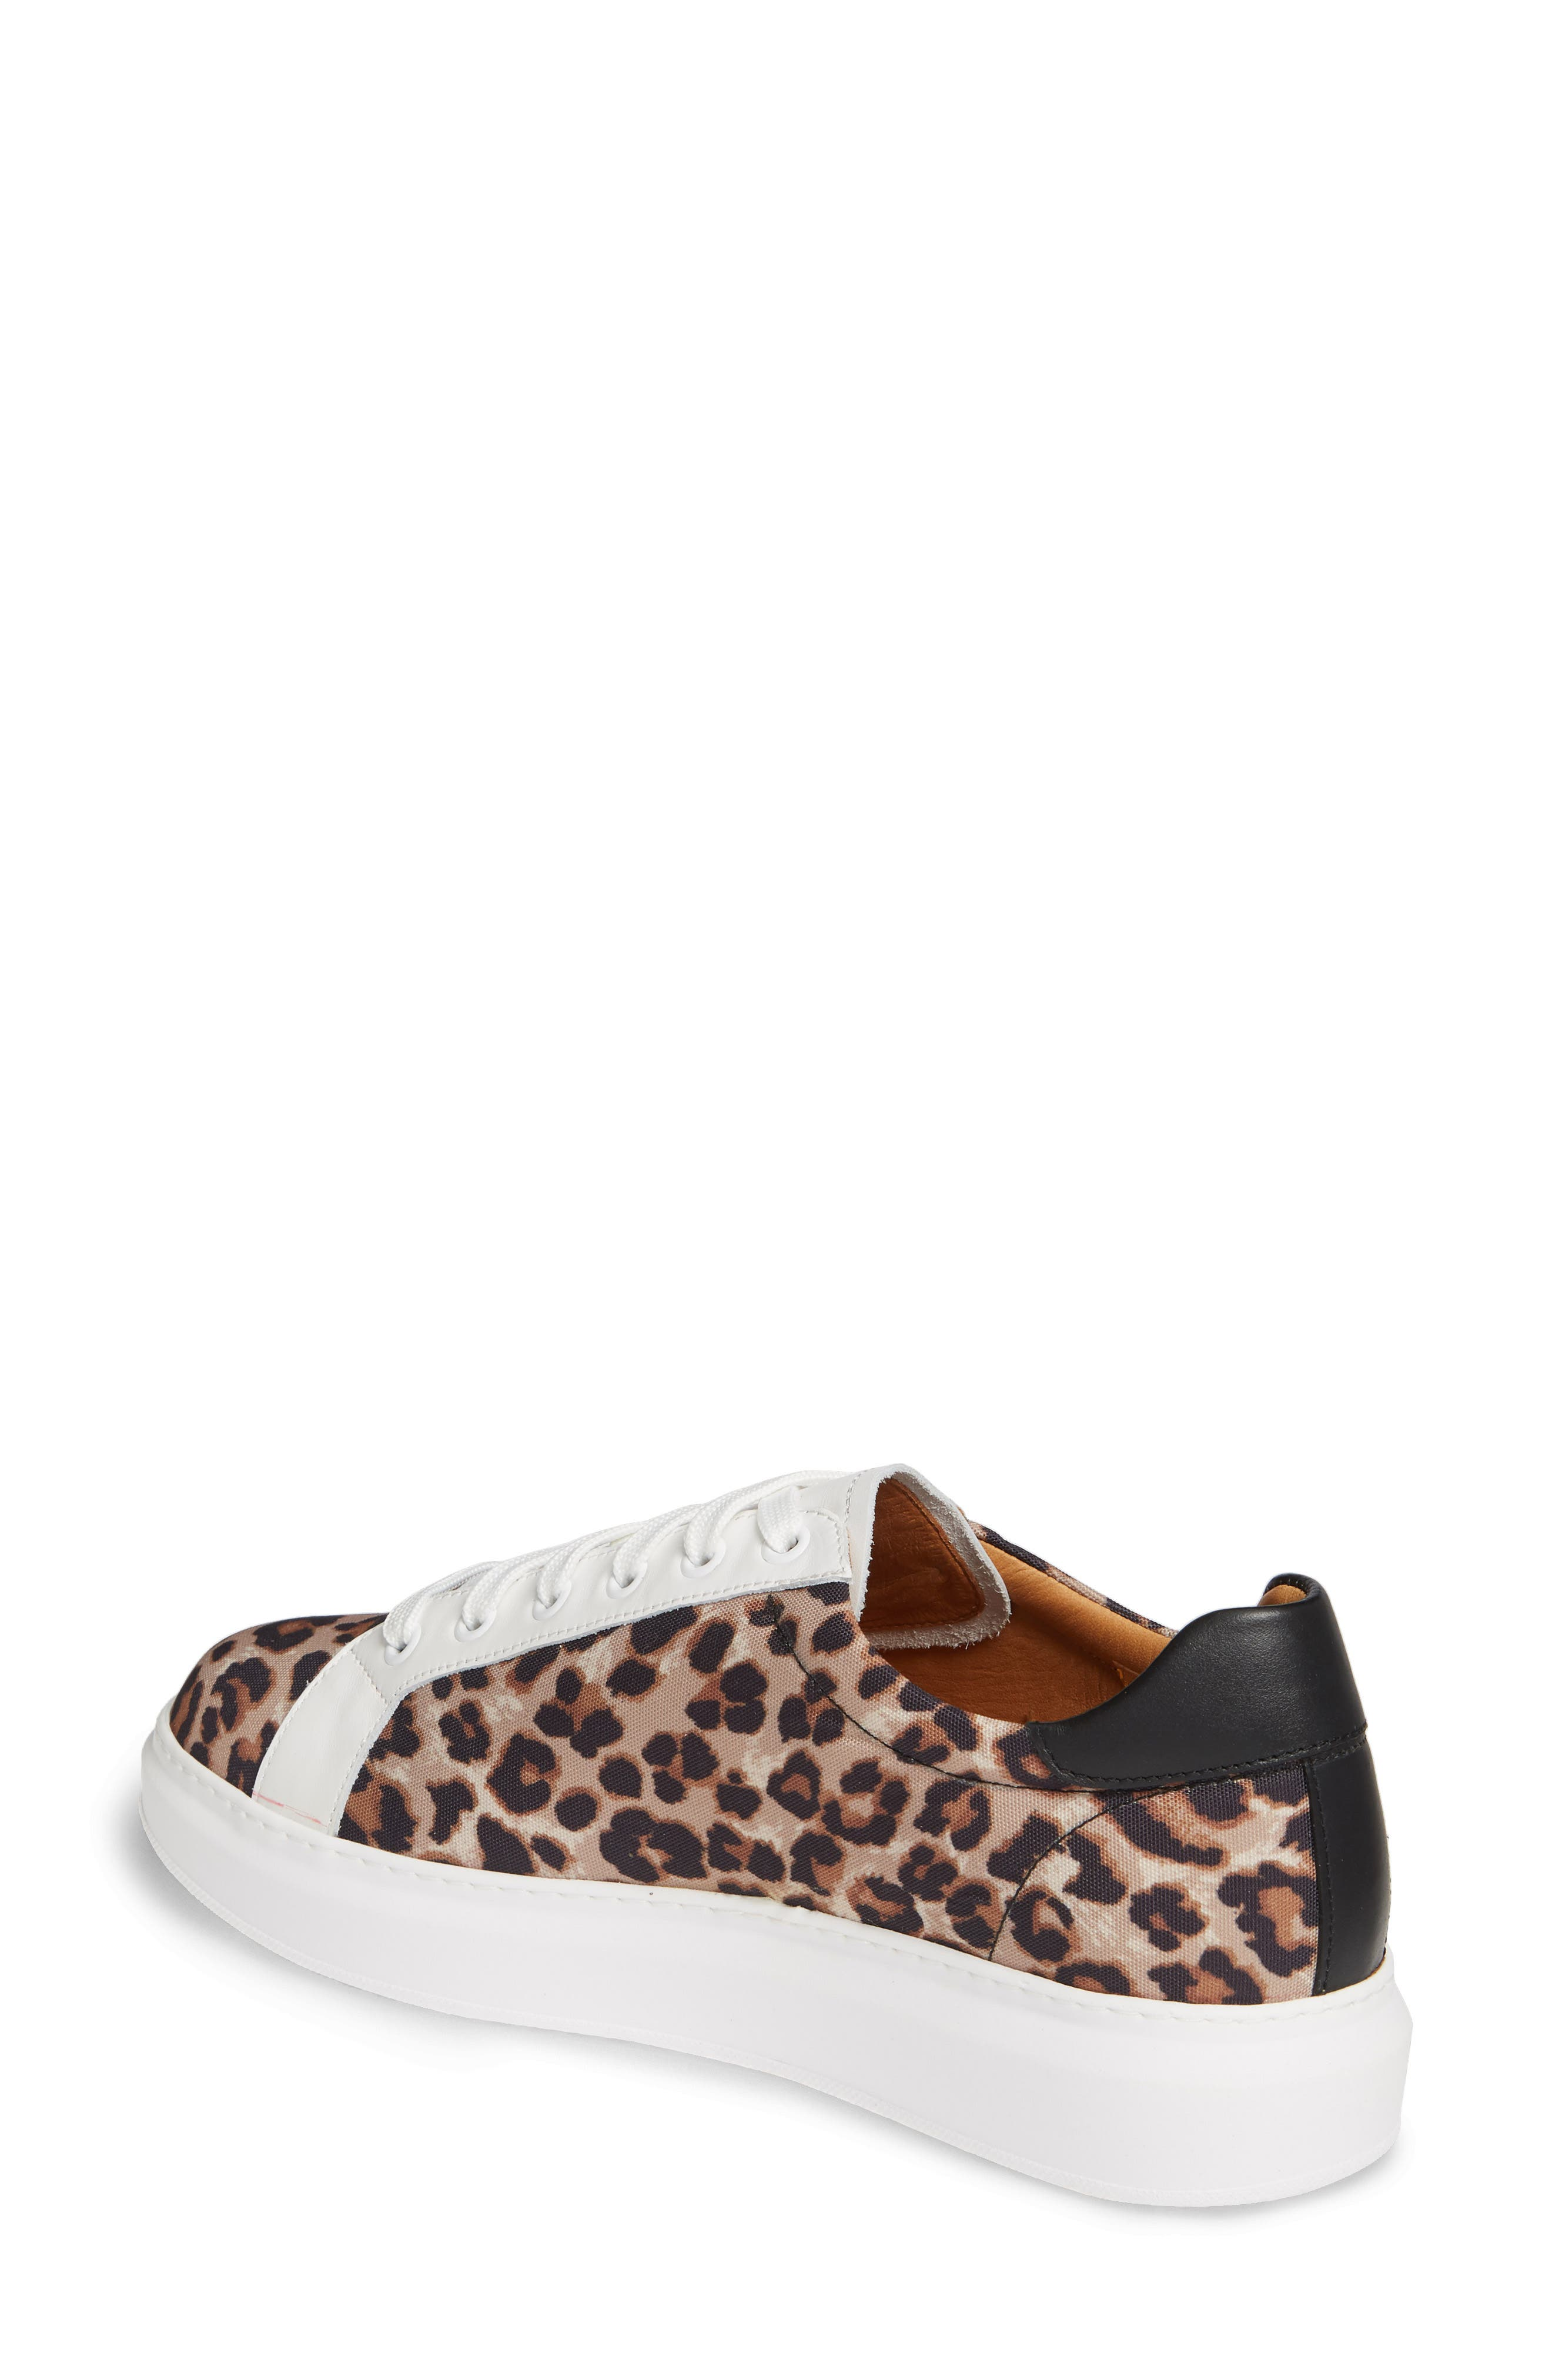 VERONICA BEARD, Daelyn Leopard Print Sneaker, Alternate thumbnail 2, color, LEOPARD